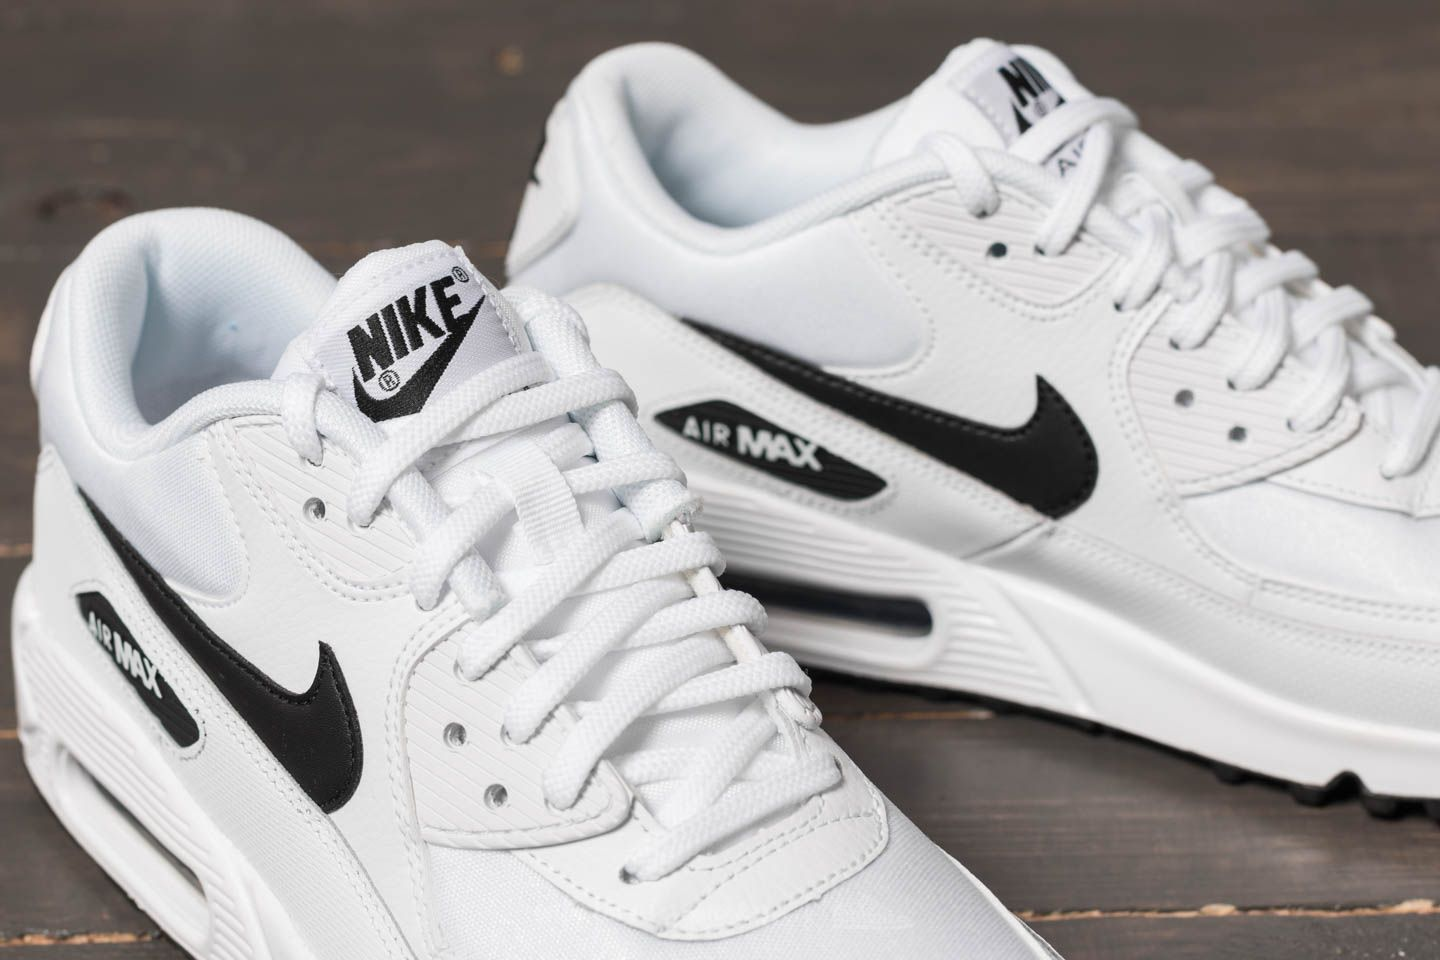 Max 90 BlackFootshop Nike White Wmns Air FTc3lK1uJ